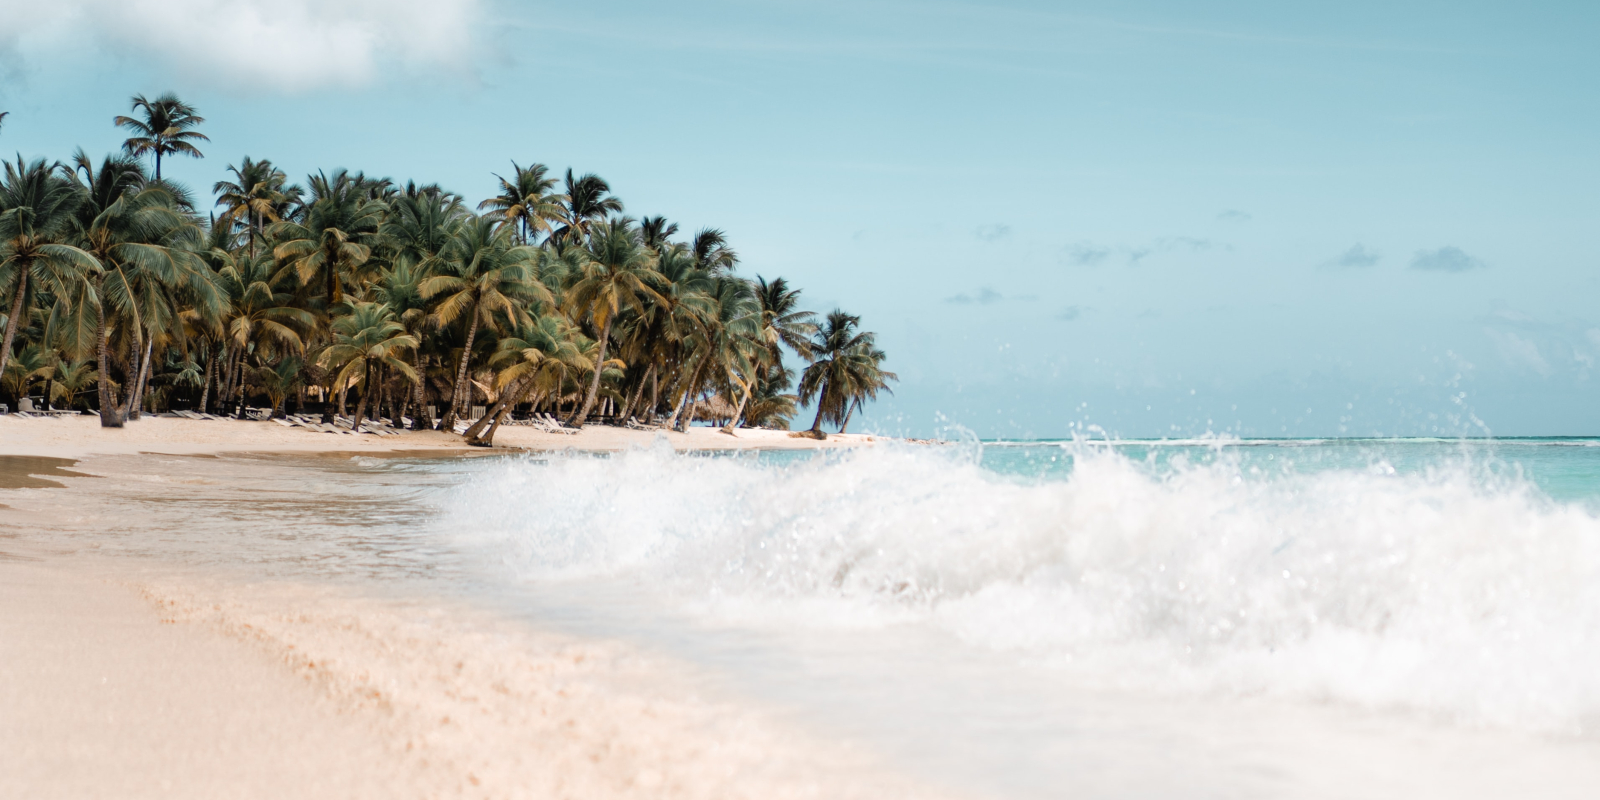 Travel blog: 10 Pictures of the Dominican Republic to Fuel Your Wanderlust